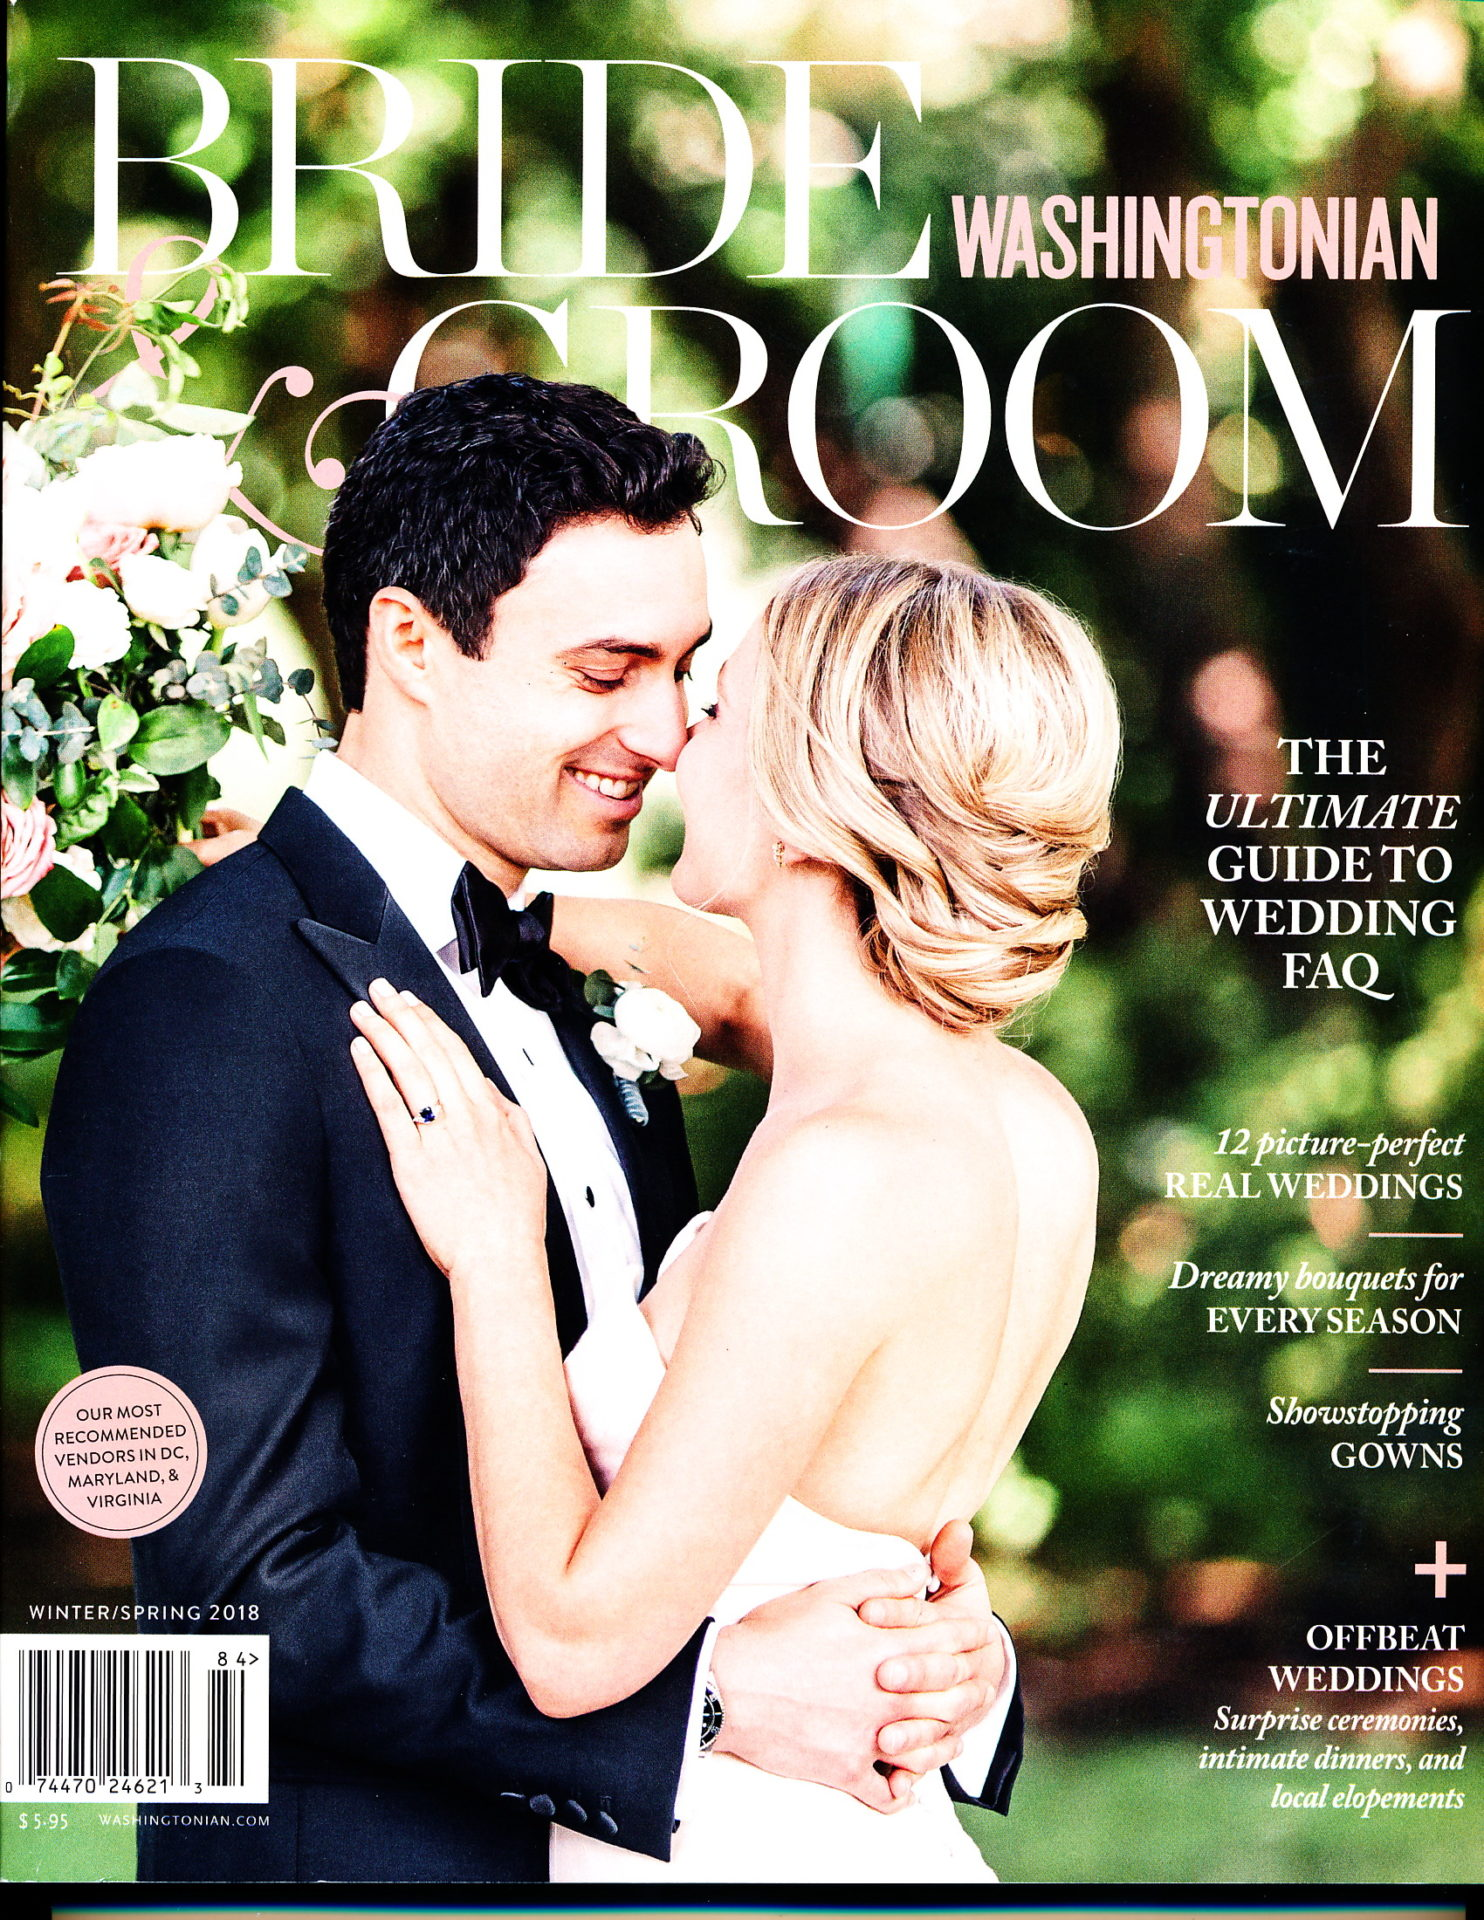 Washingtonian Bride & Groom<br> Winter/Spring 2018